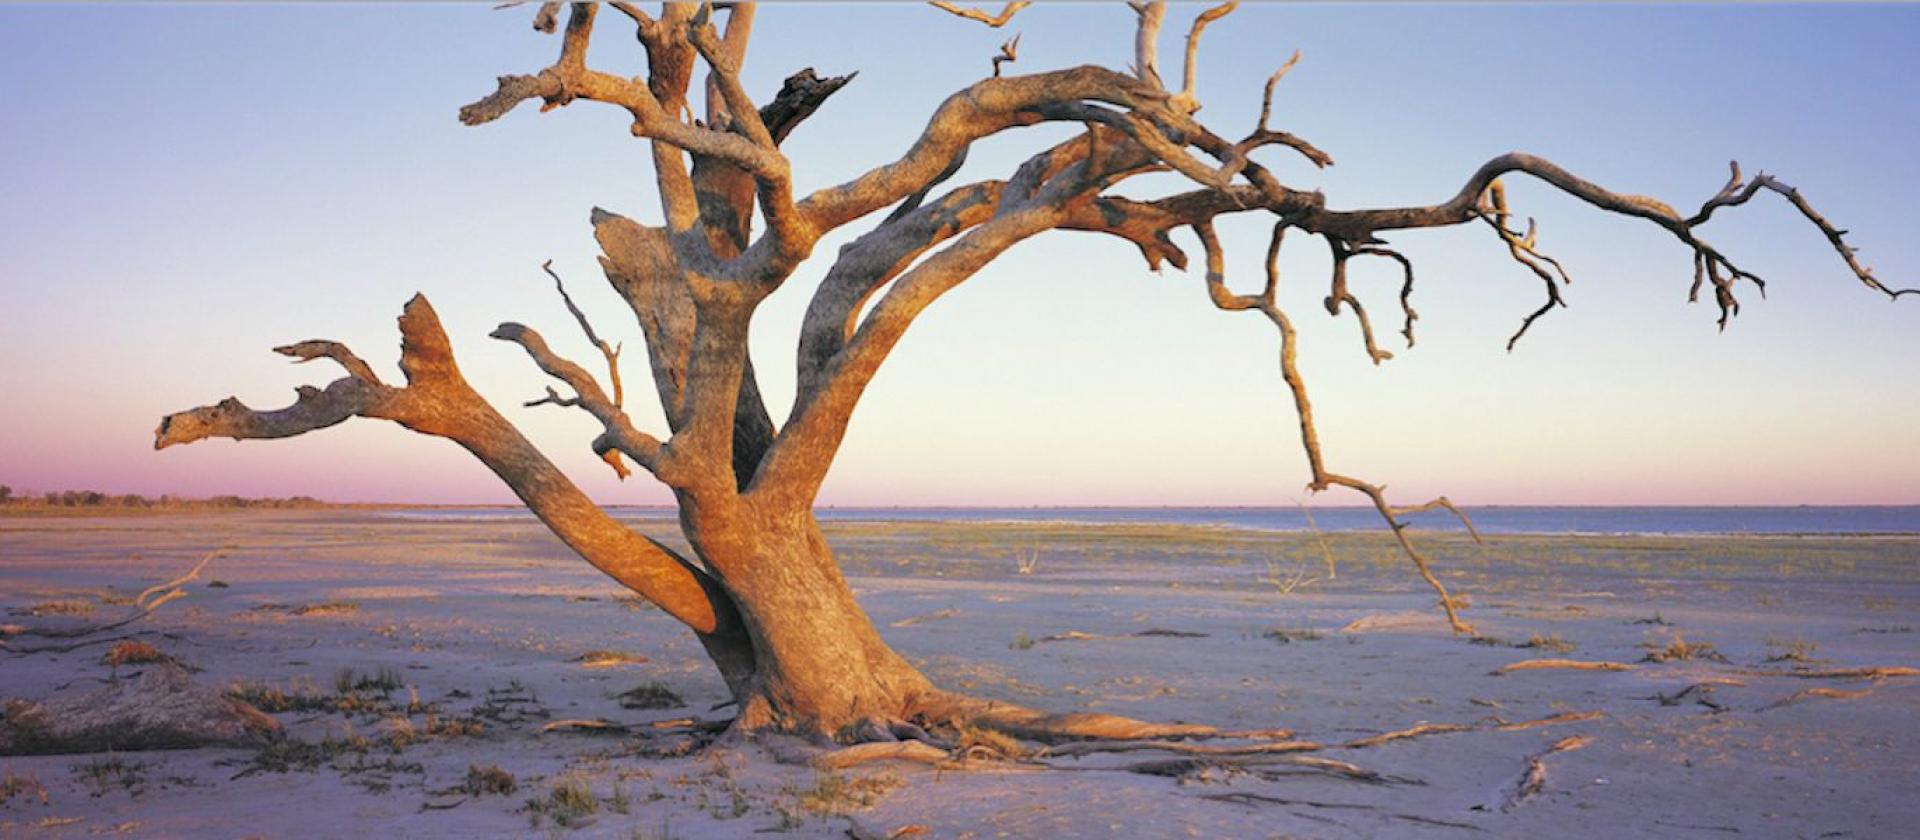 Twisted Tree, Menindee Lakes near Broken Hill